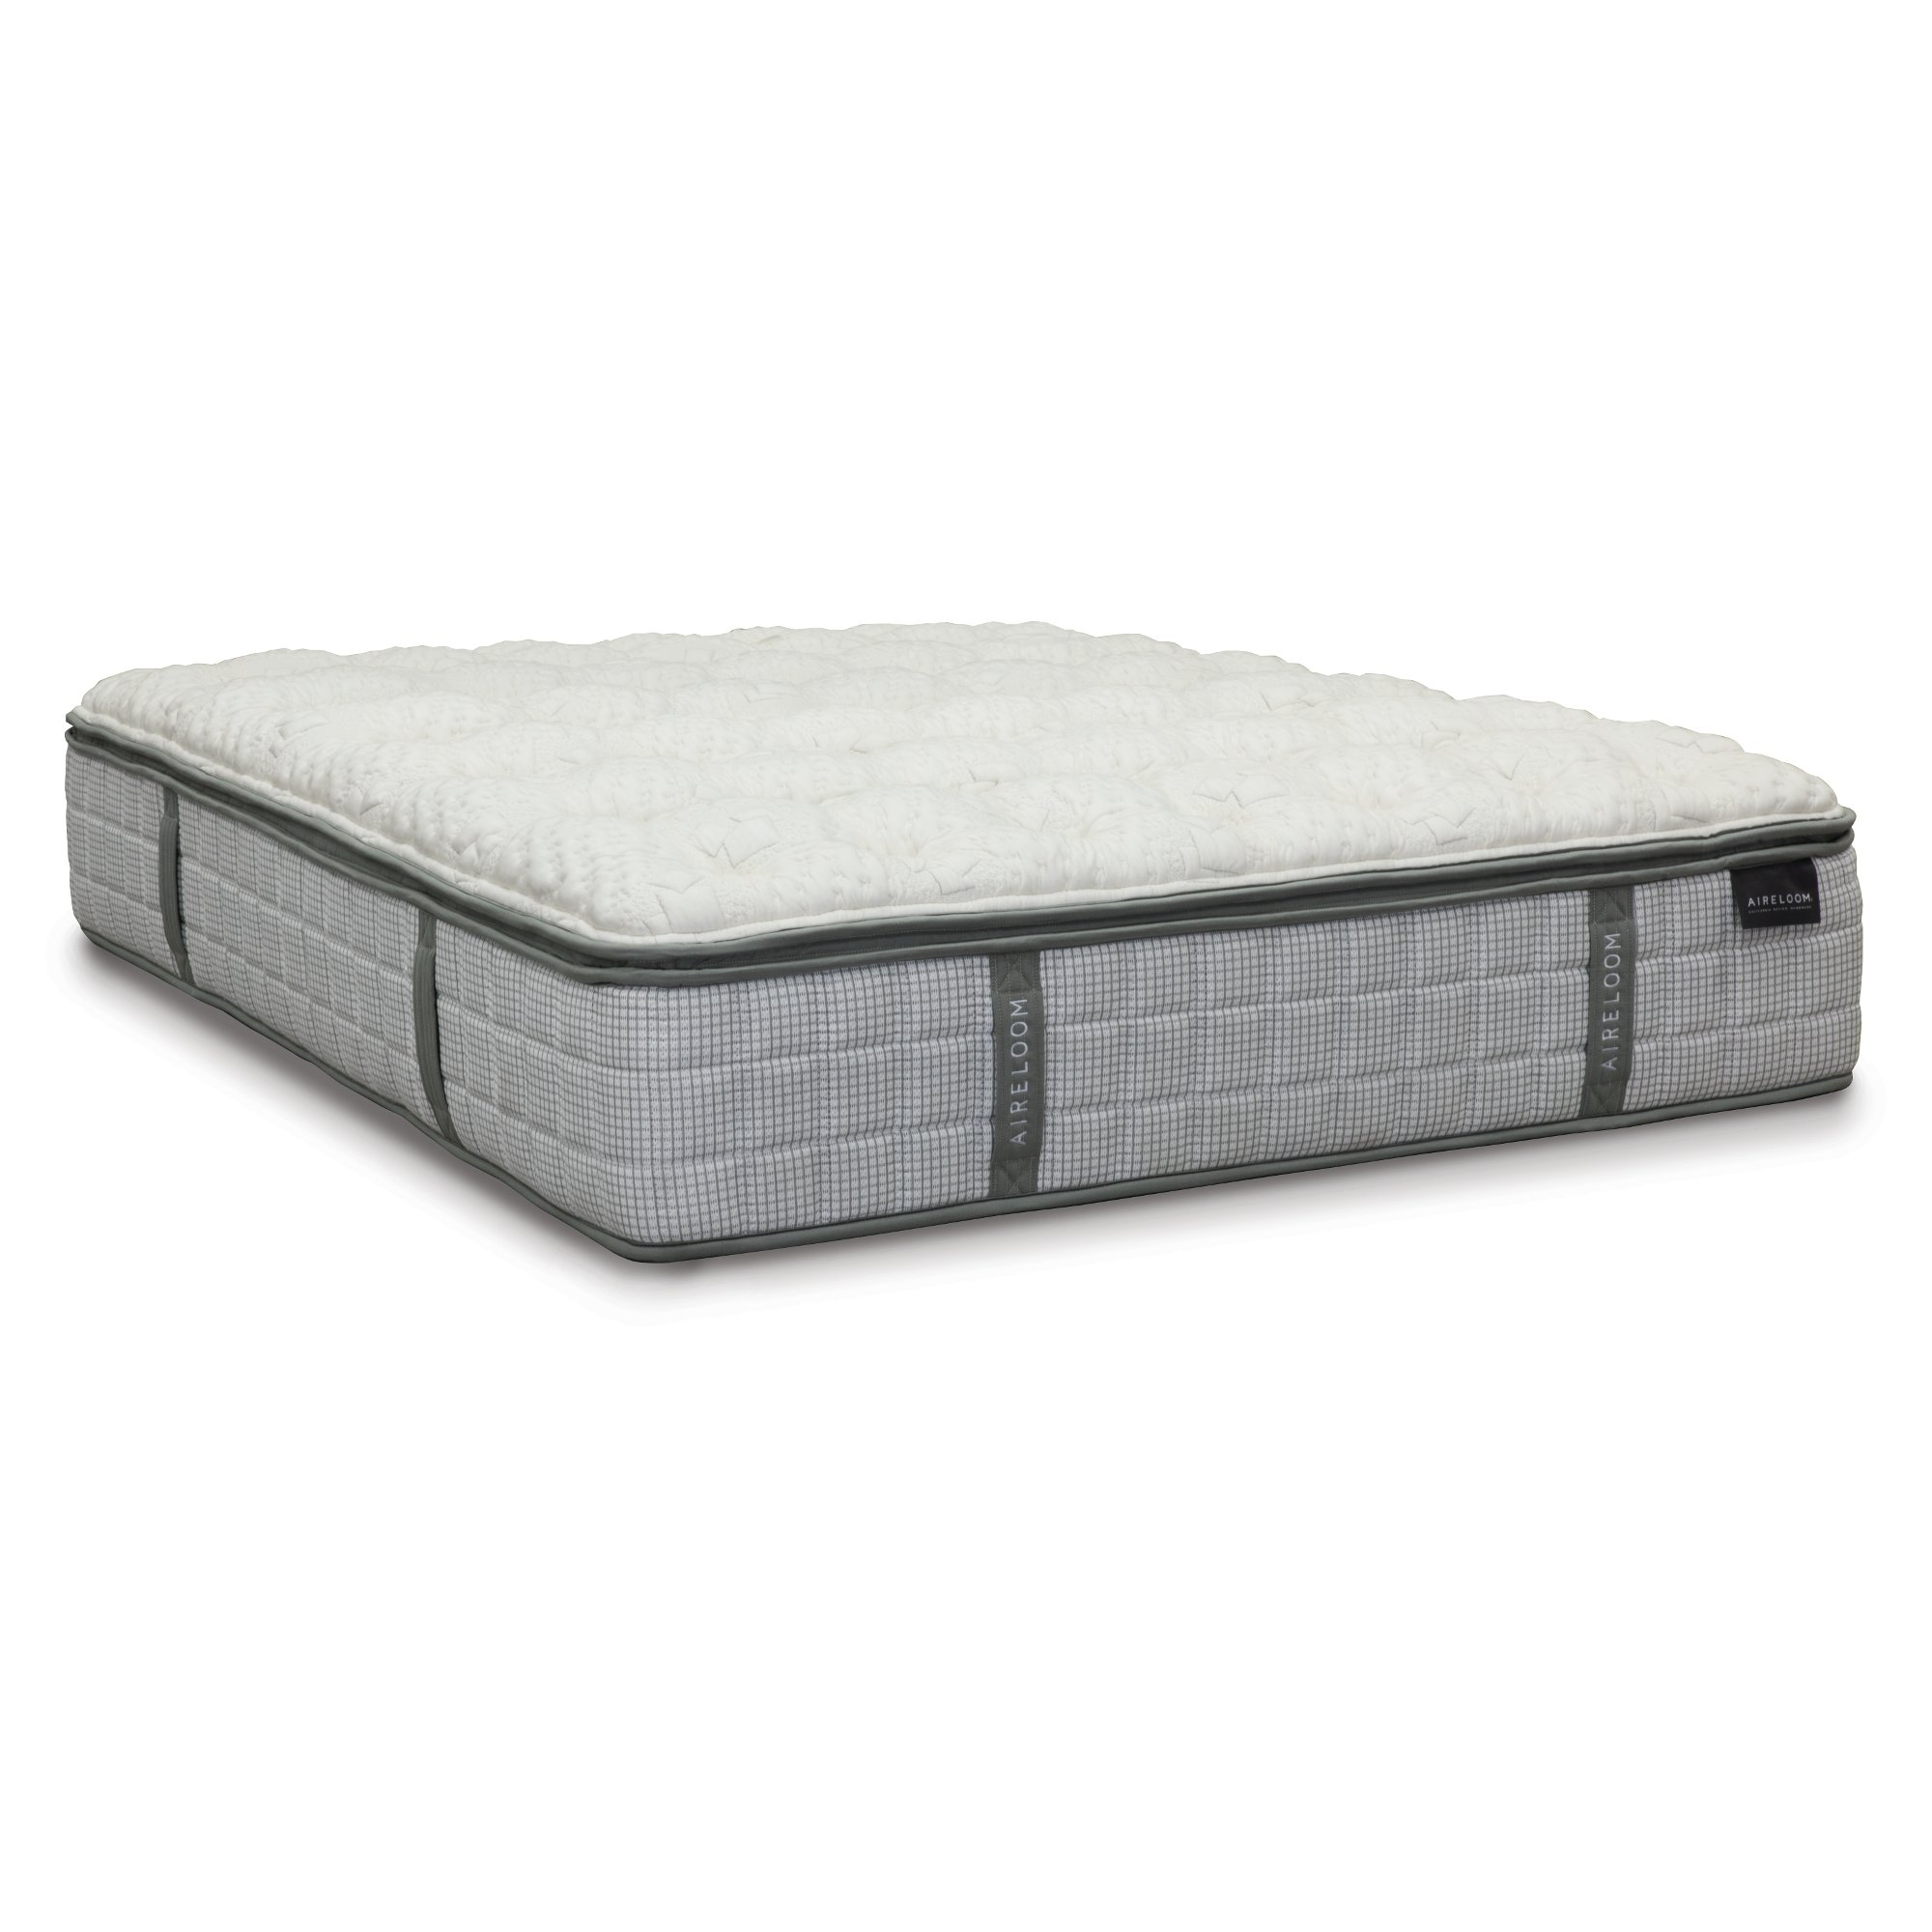 Cheap king mattress faqs about california king mattresses british bed company cotton pocket Cheap king beds with mattress